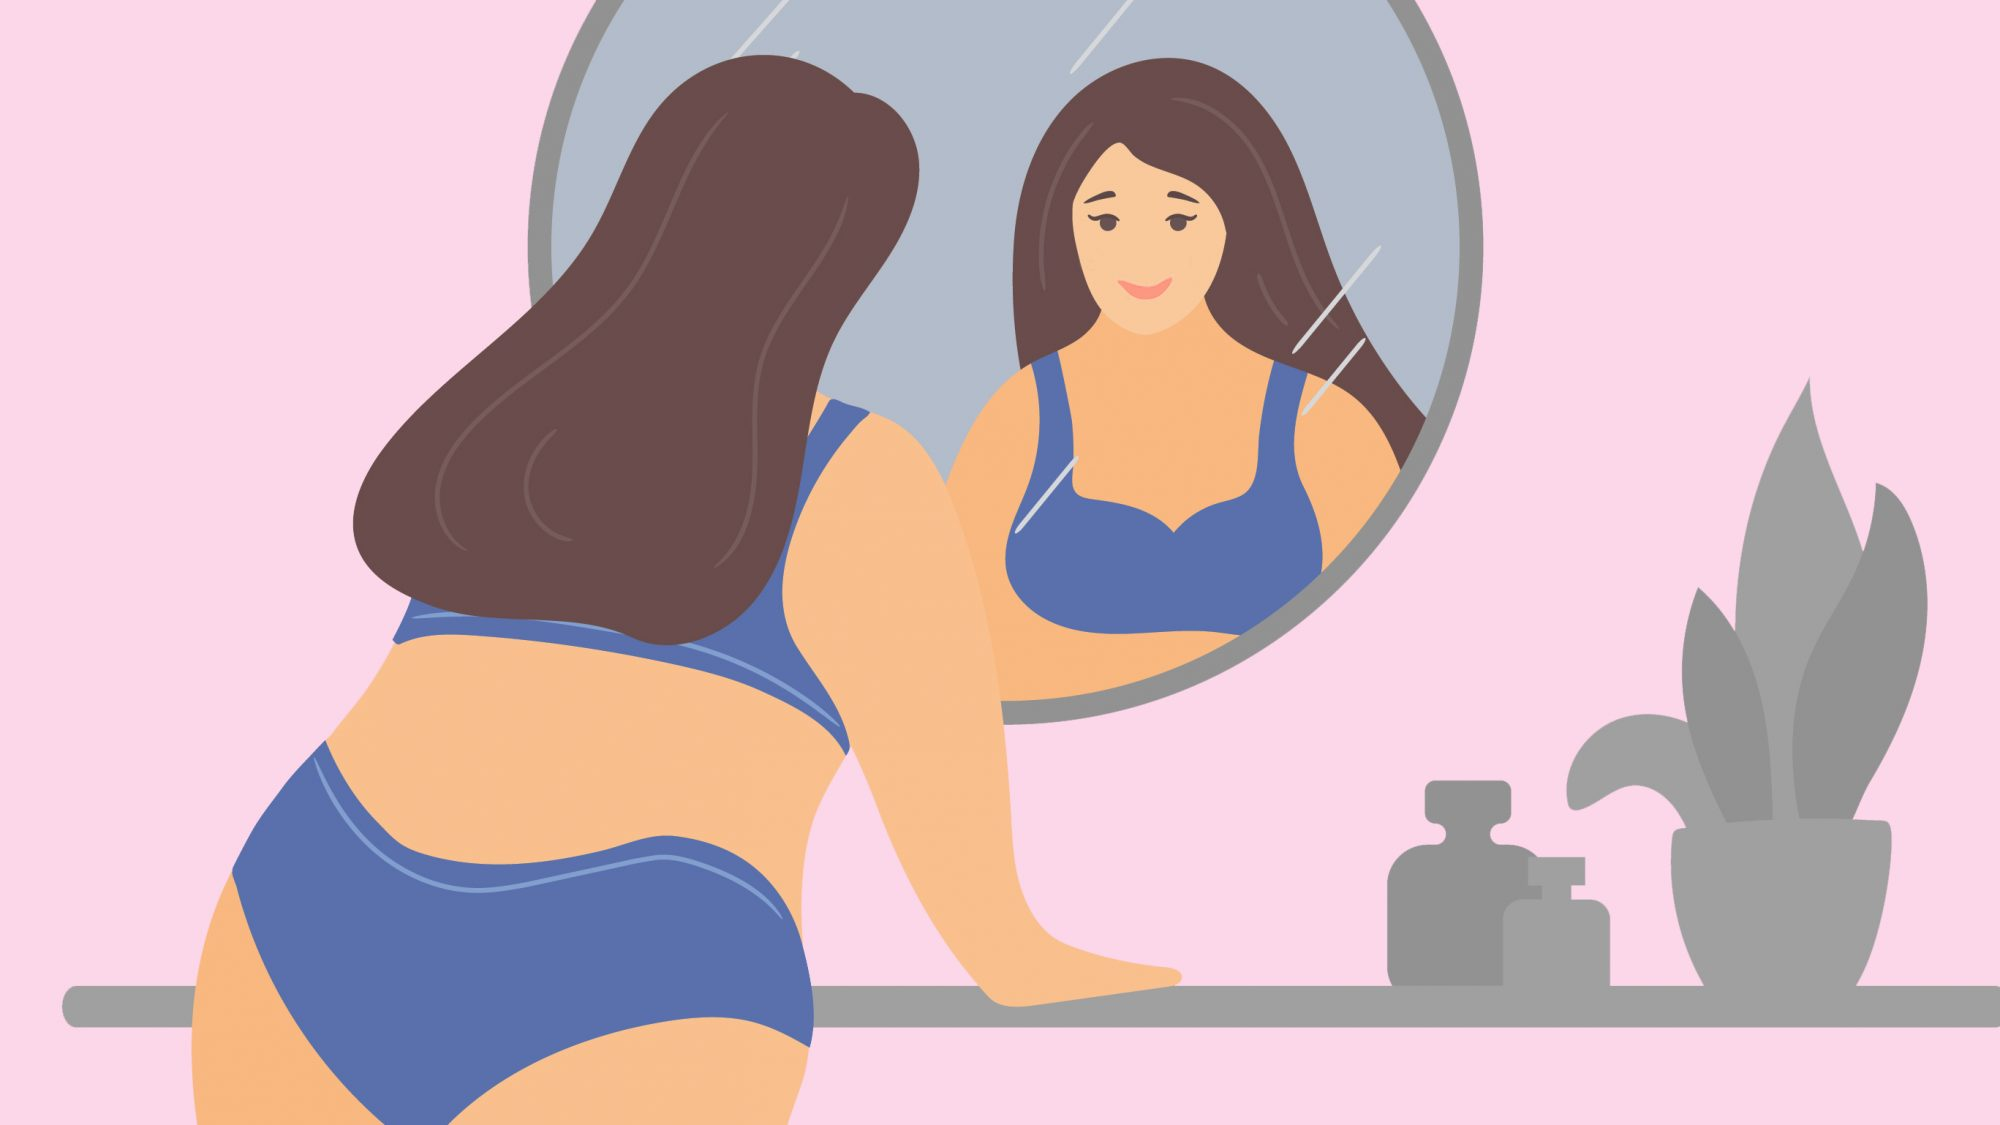 Health things to know about yourself - numbers to know (woman looking into mirror)